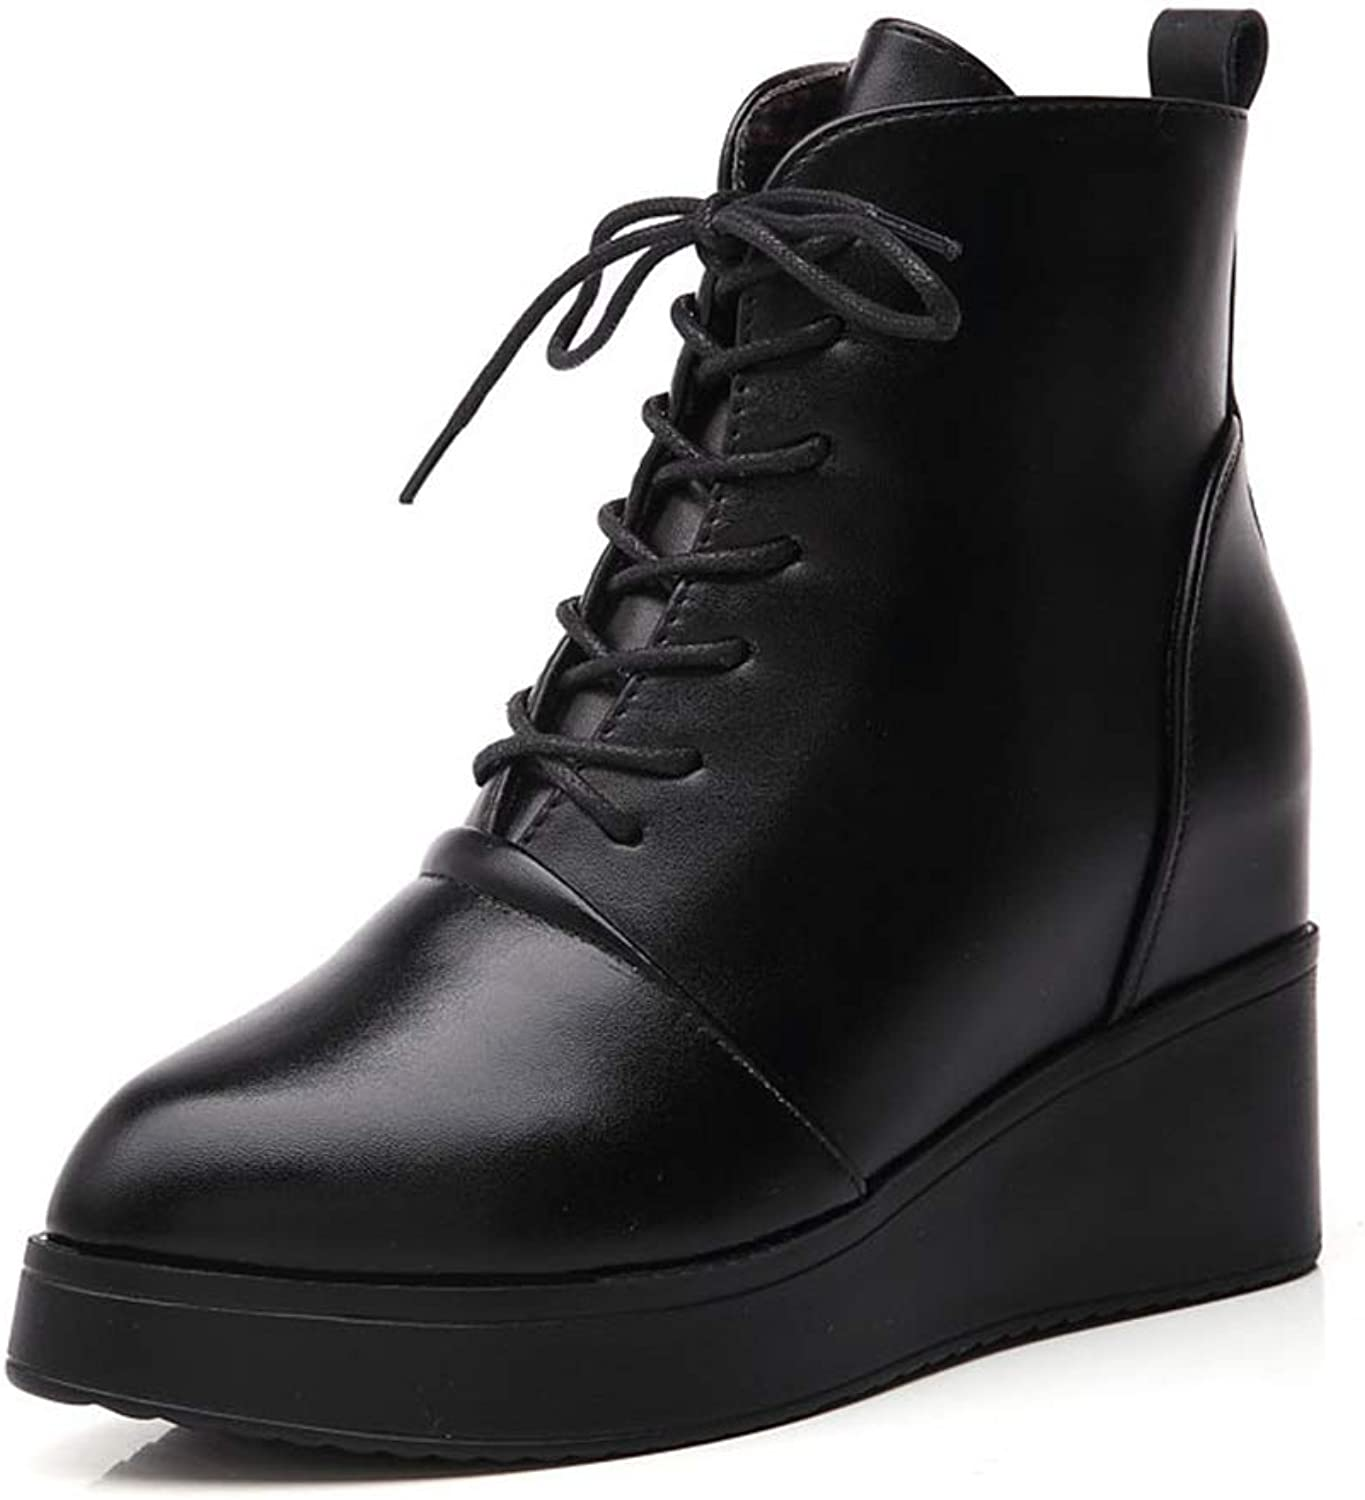 York Zhu Women Ankle Boots,Pointed Toe Low-Top Fashion Ankle Wedge Boot